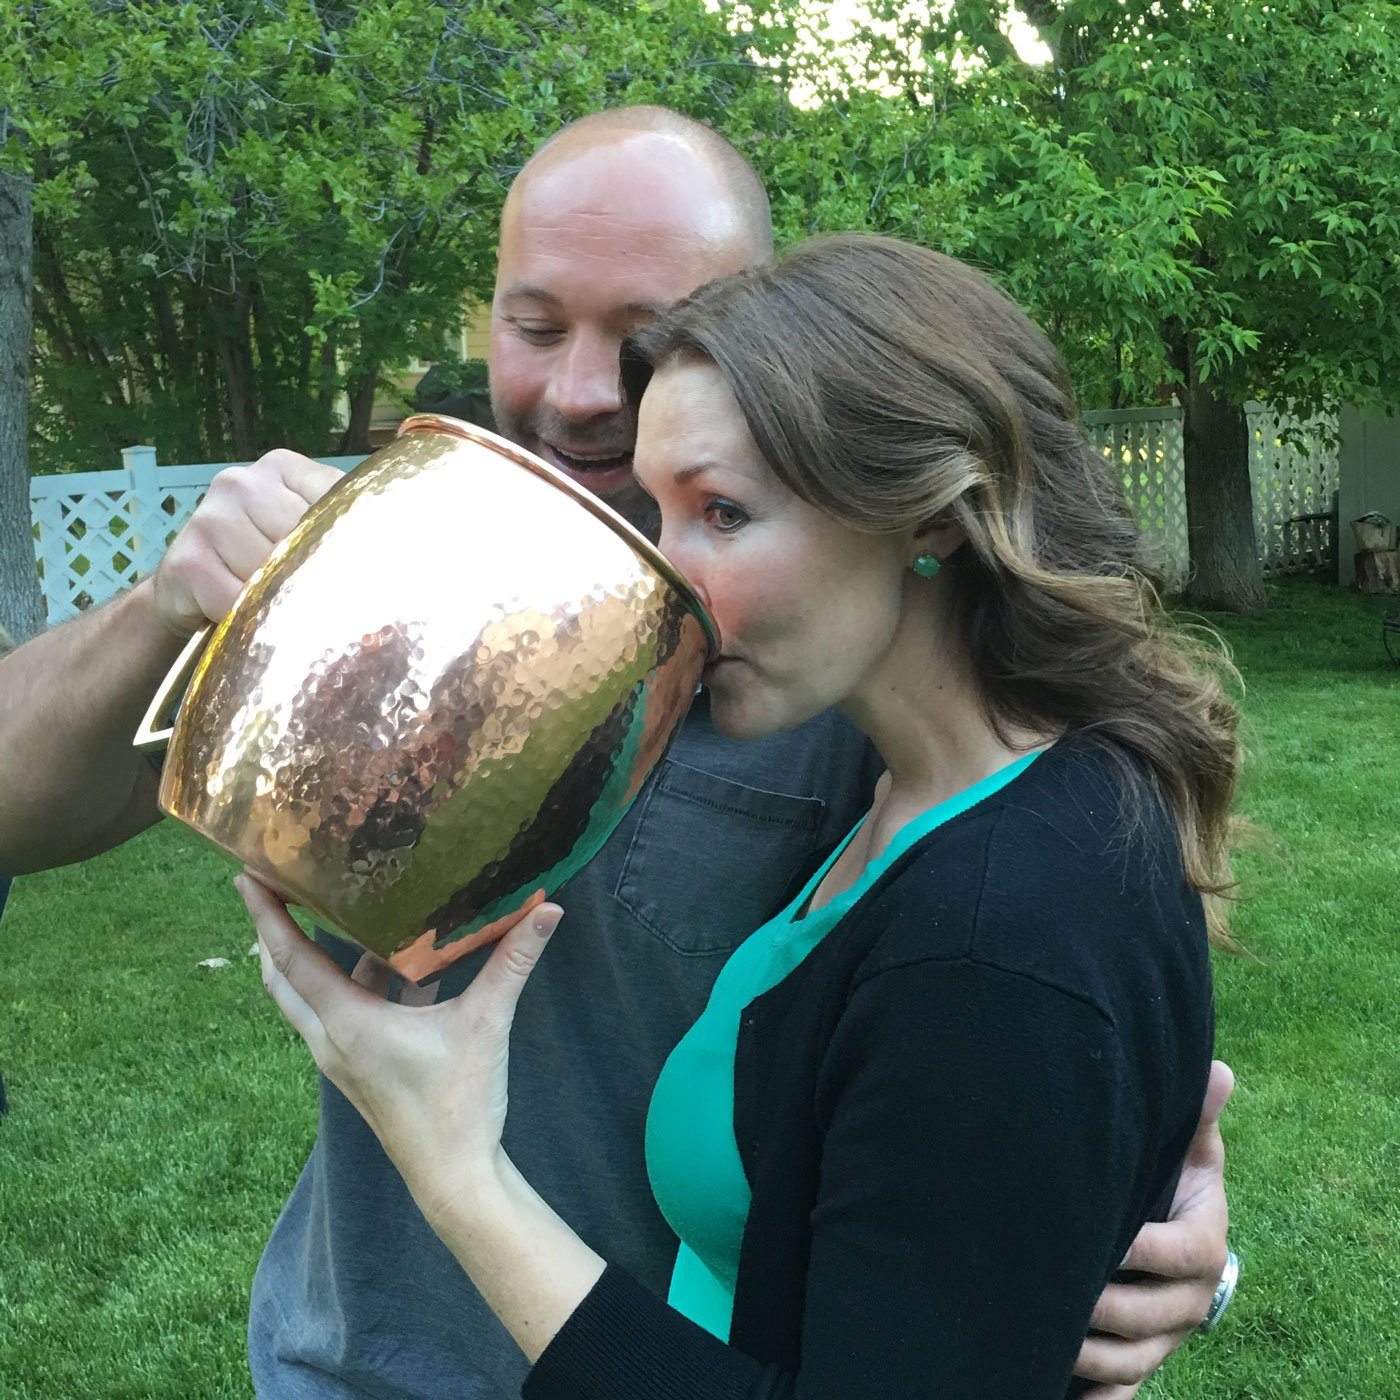 Lifestyle Banquet Giant Moscow Mule Mug (Solid Not Plated) - 1.3 Gallons (166.4 Oz) Extra Large Moscow Mule Copper Mug - Pure Hammered Copper Ice Bucket by Lifestyle Banquet